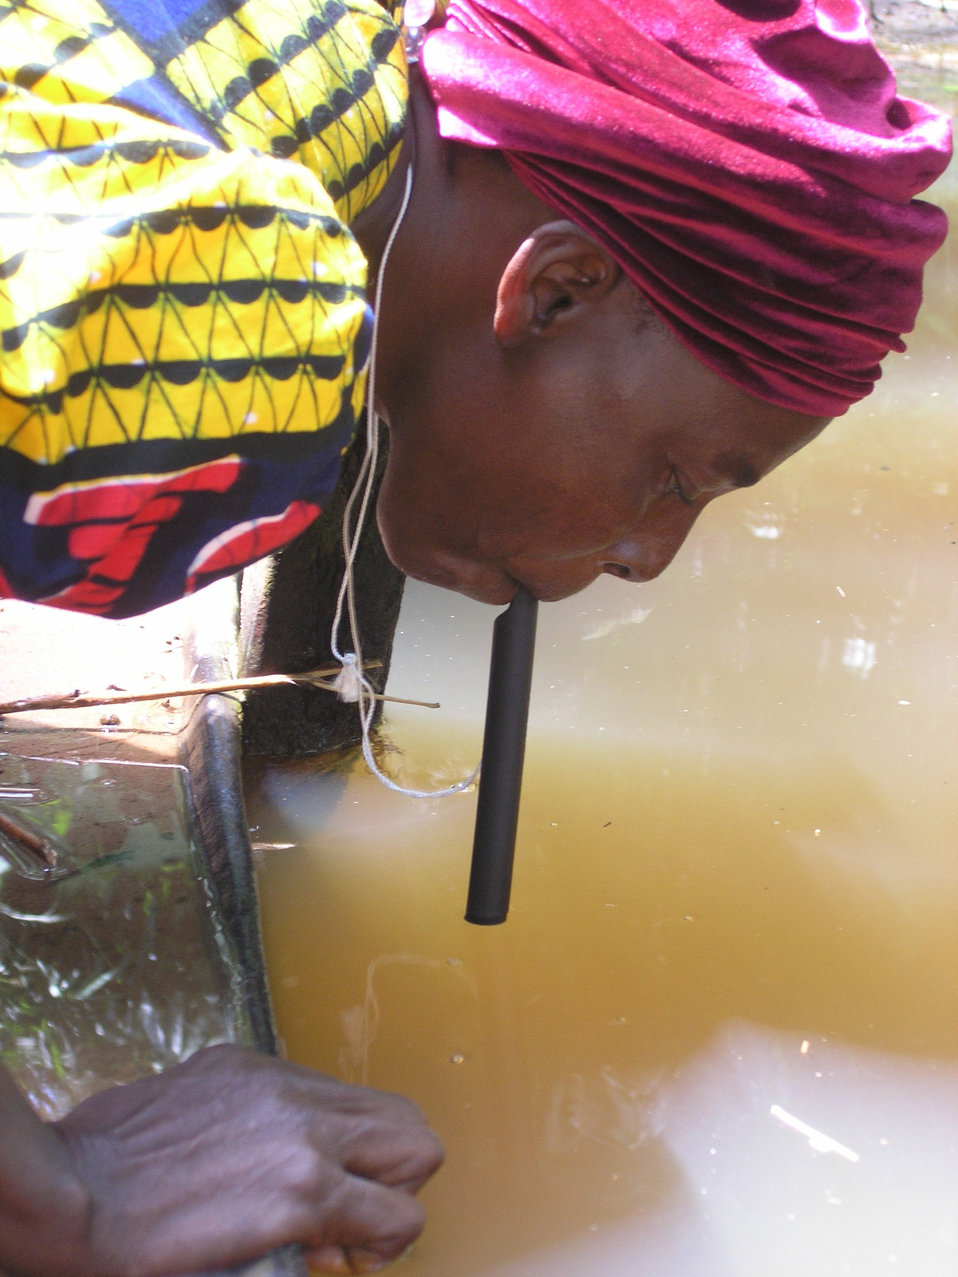 This 2002 image depicts a Nigerian woman drinking water directly from a local pond through a pipe filter. Similar to a straw, pipe filters a